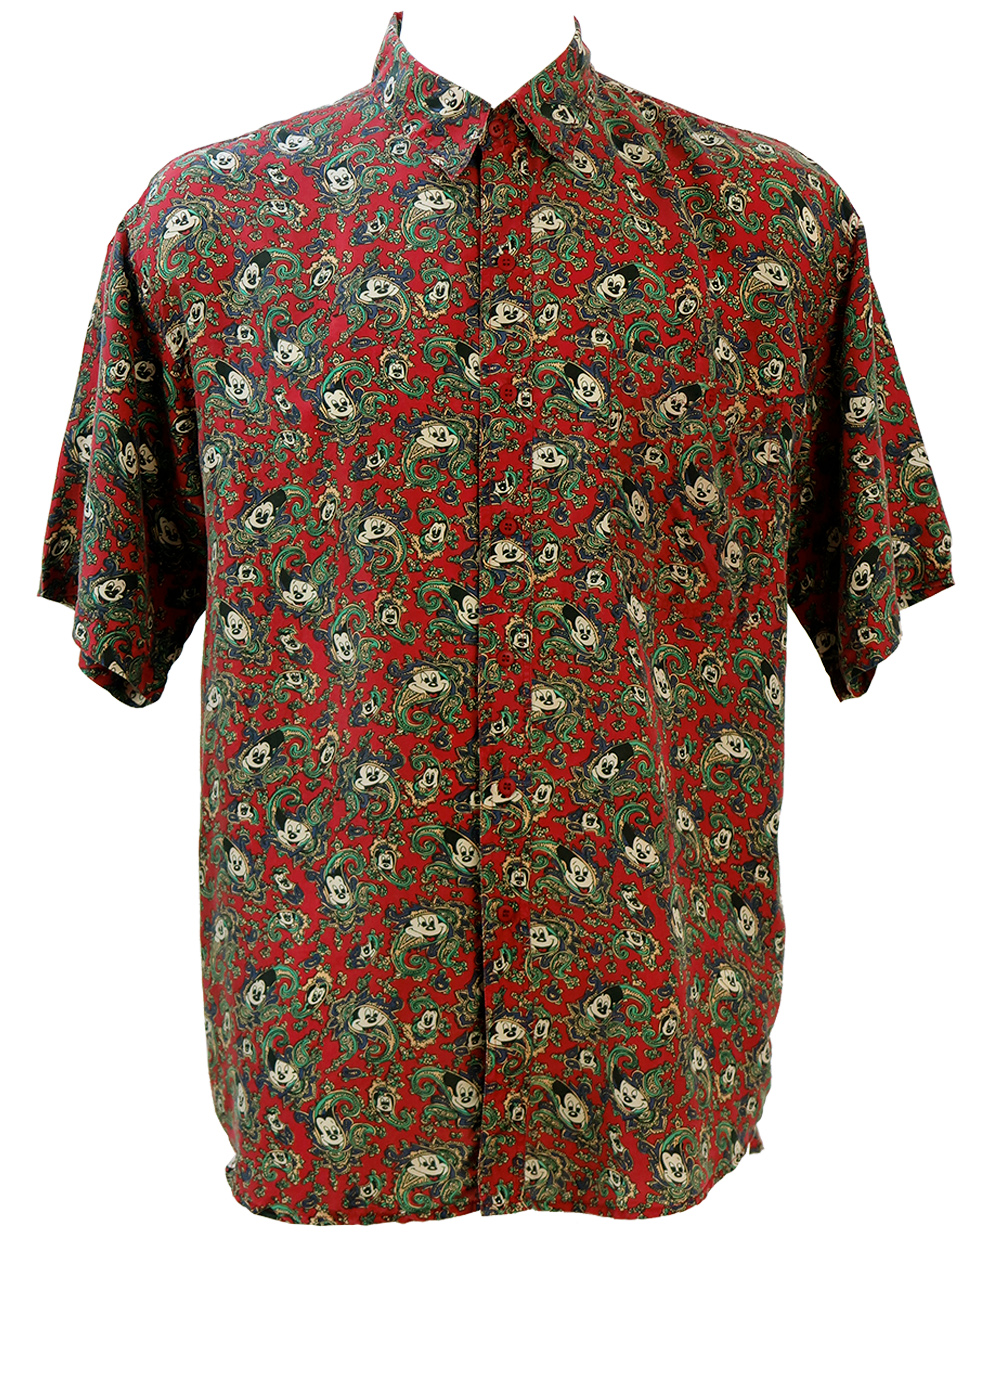 14c0a8fa2 Vintage 90's Silk Short Sleeved Shirt with Mickey Mouse Paisley Pattern - L /XL